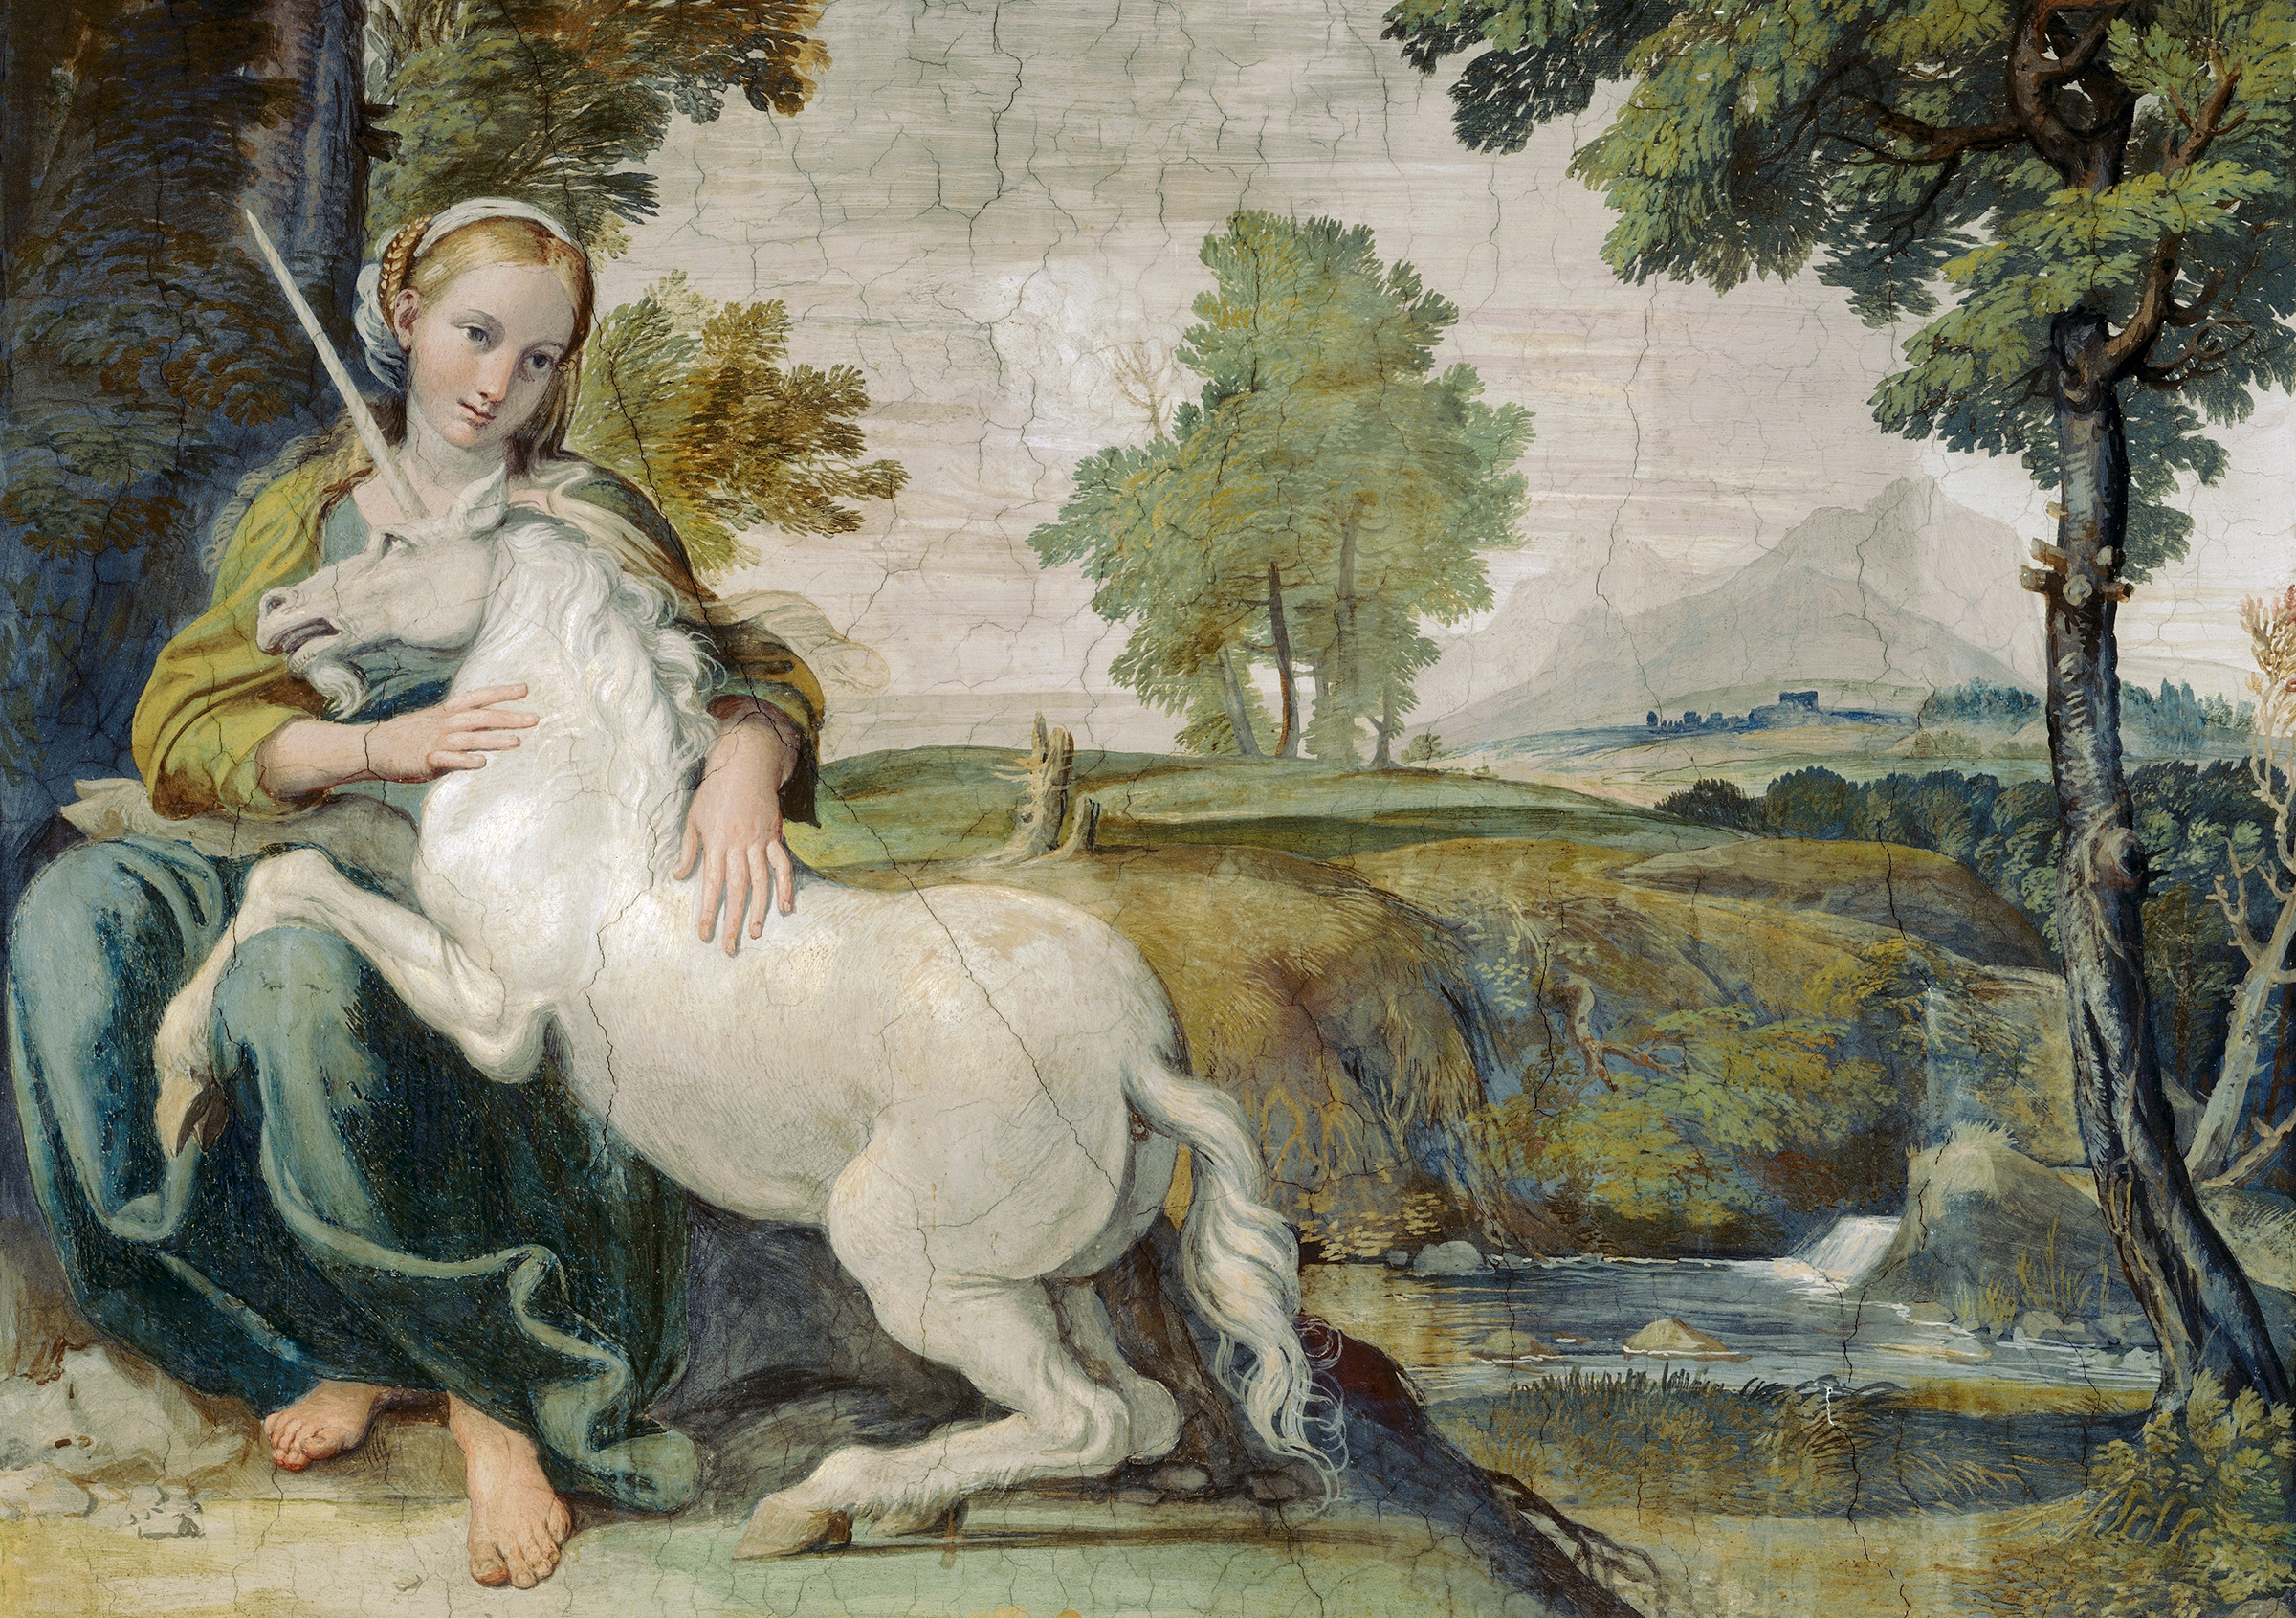 The Maiden and the Unicorn by Domenichino